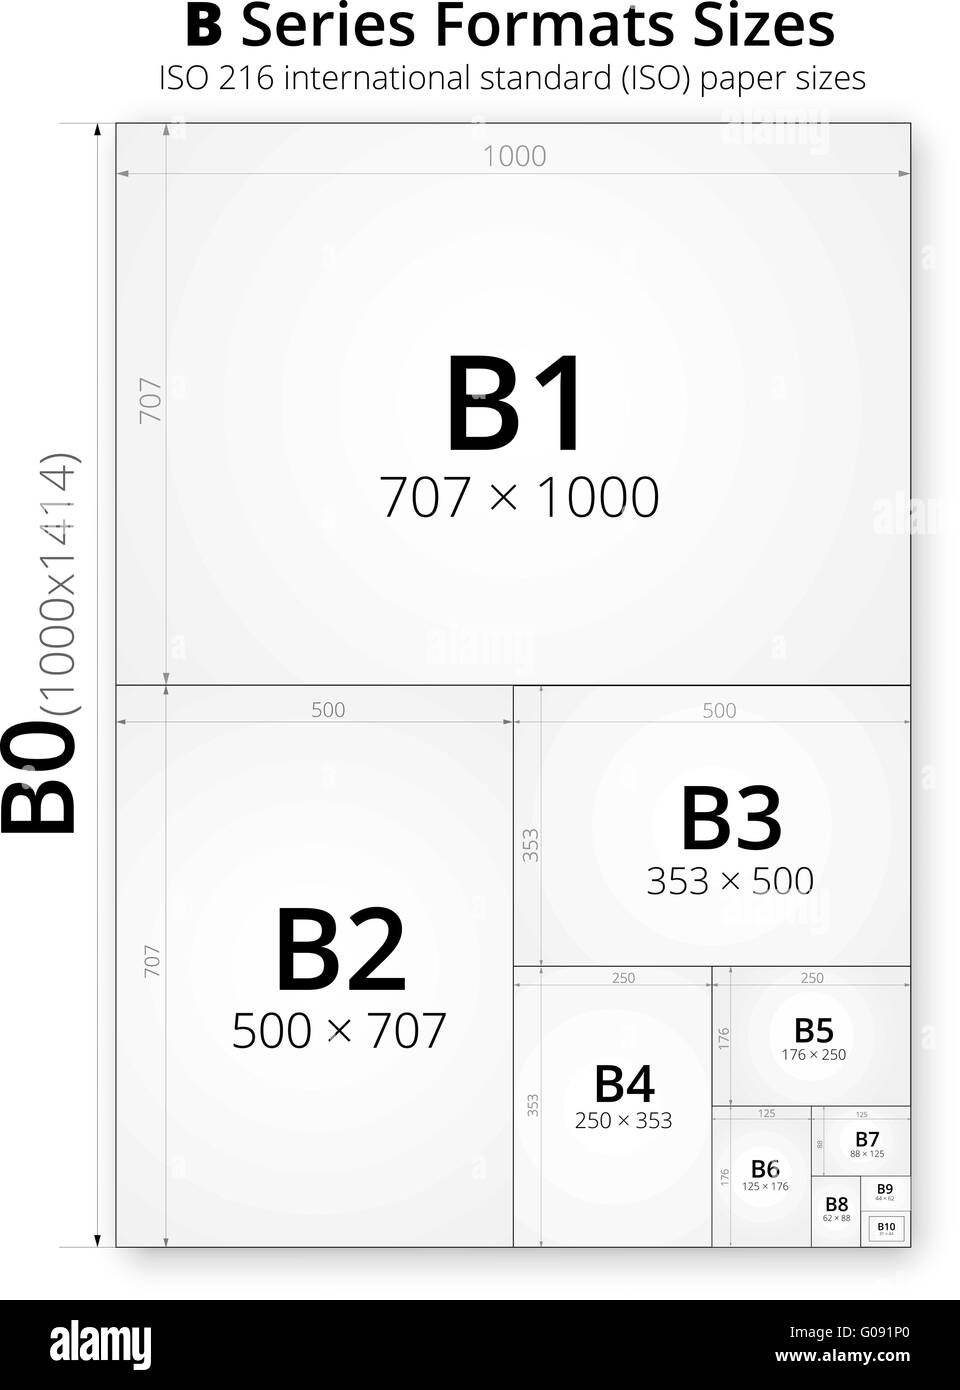 Size of format B paper sheets - Stock Image